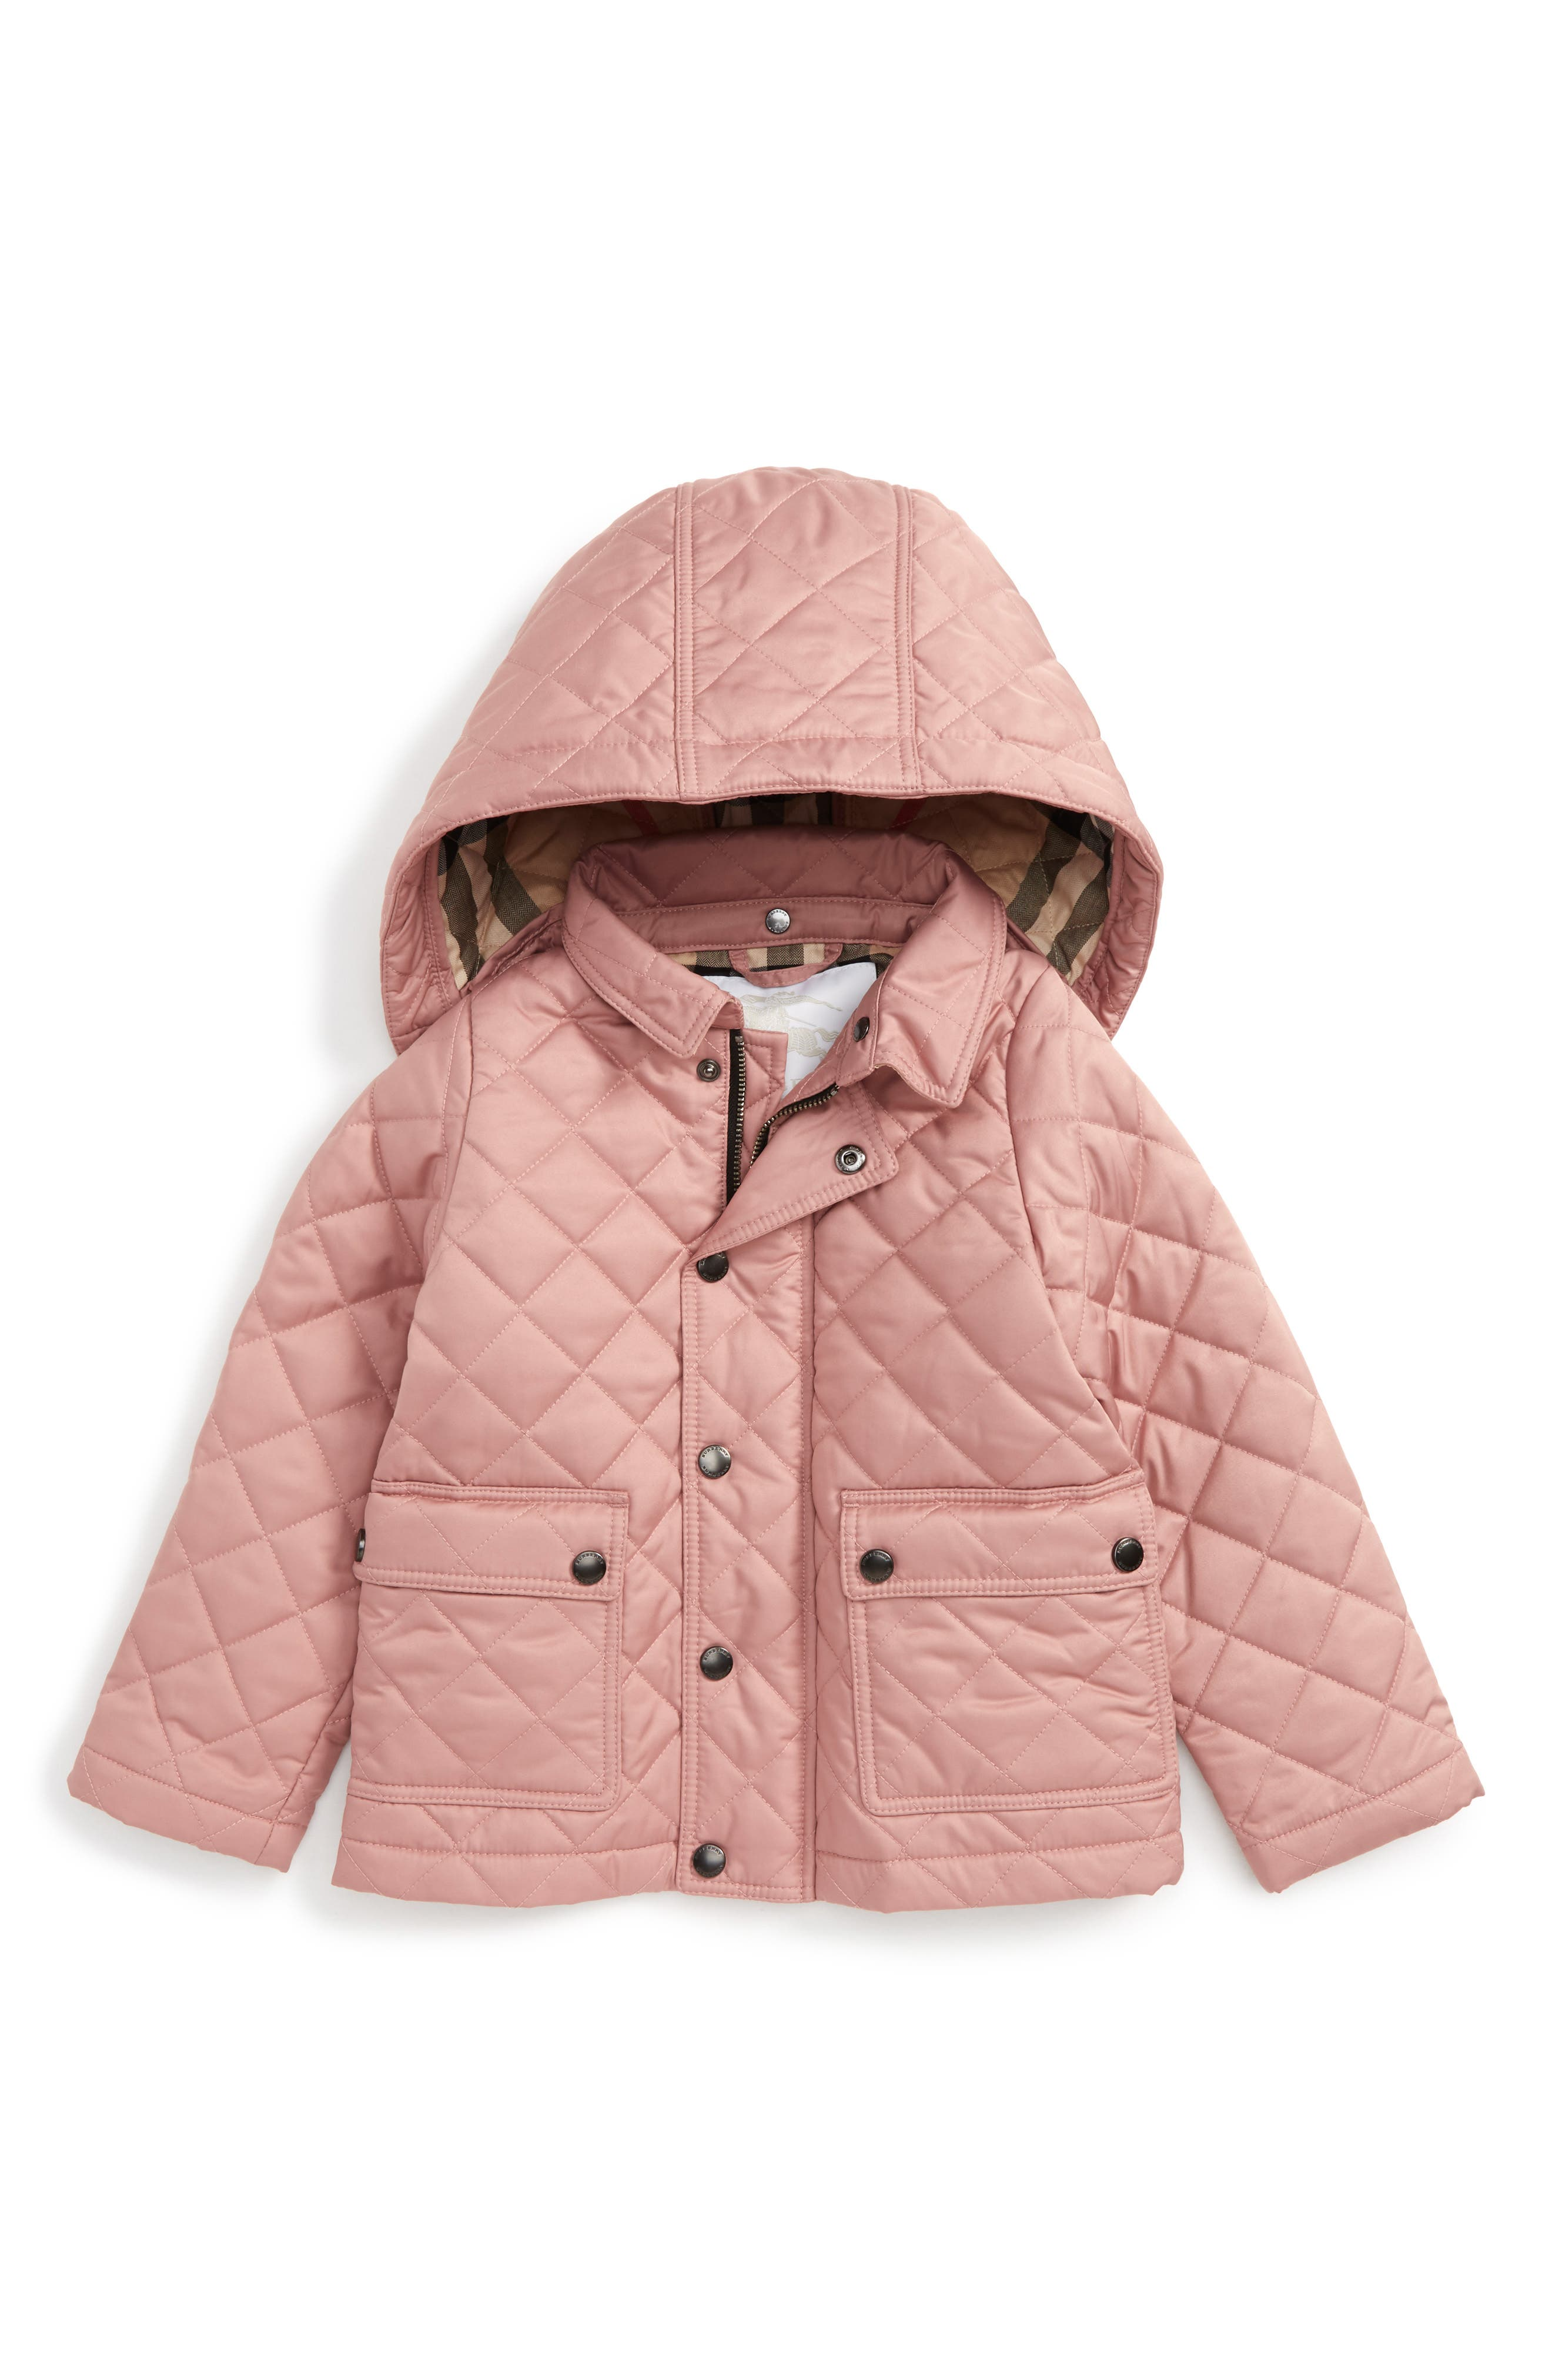 Alternate Image 1 Selected - Burberry Jamie Quilted Hooded Puffer Jacket (Toddler Girls)